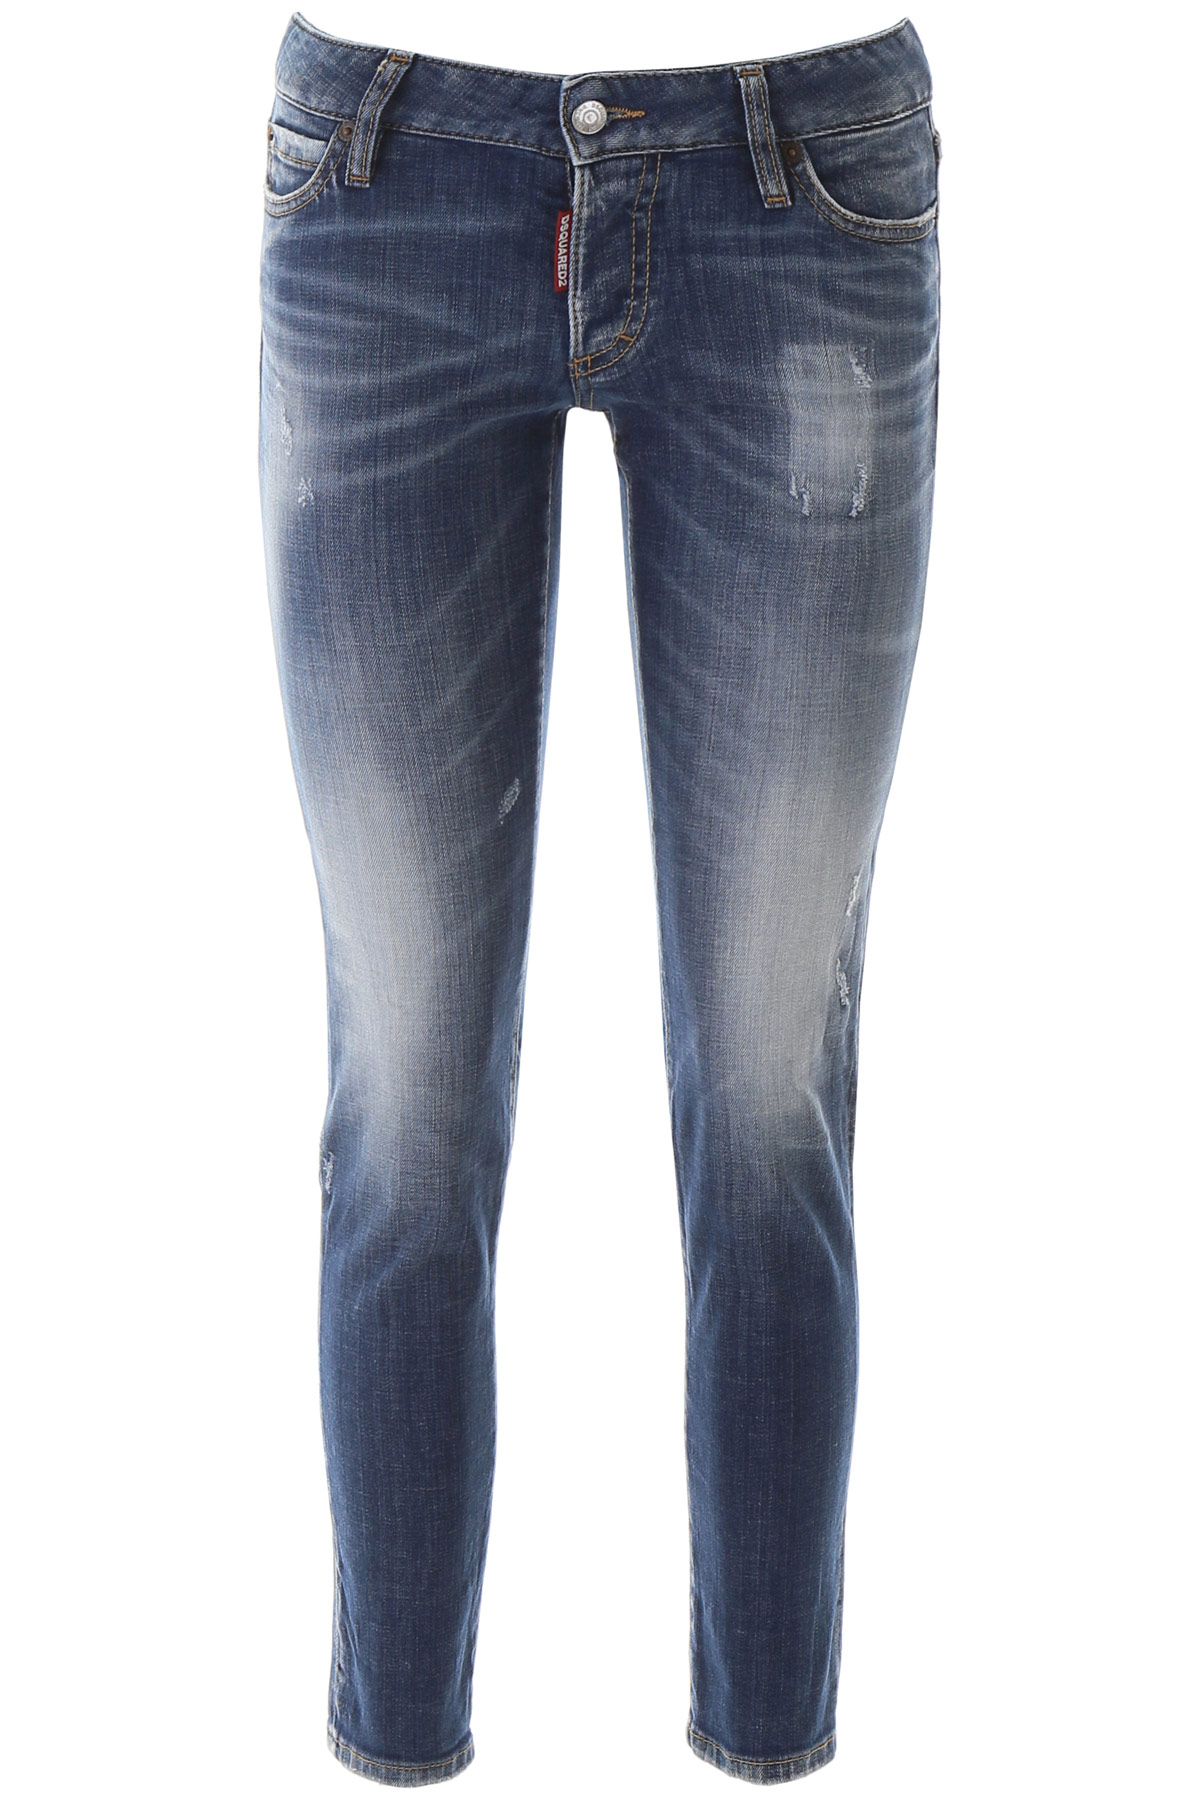 DSQUARED2 JENNIFER JEANS 38 Blue Cotton, Denim